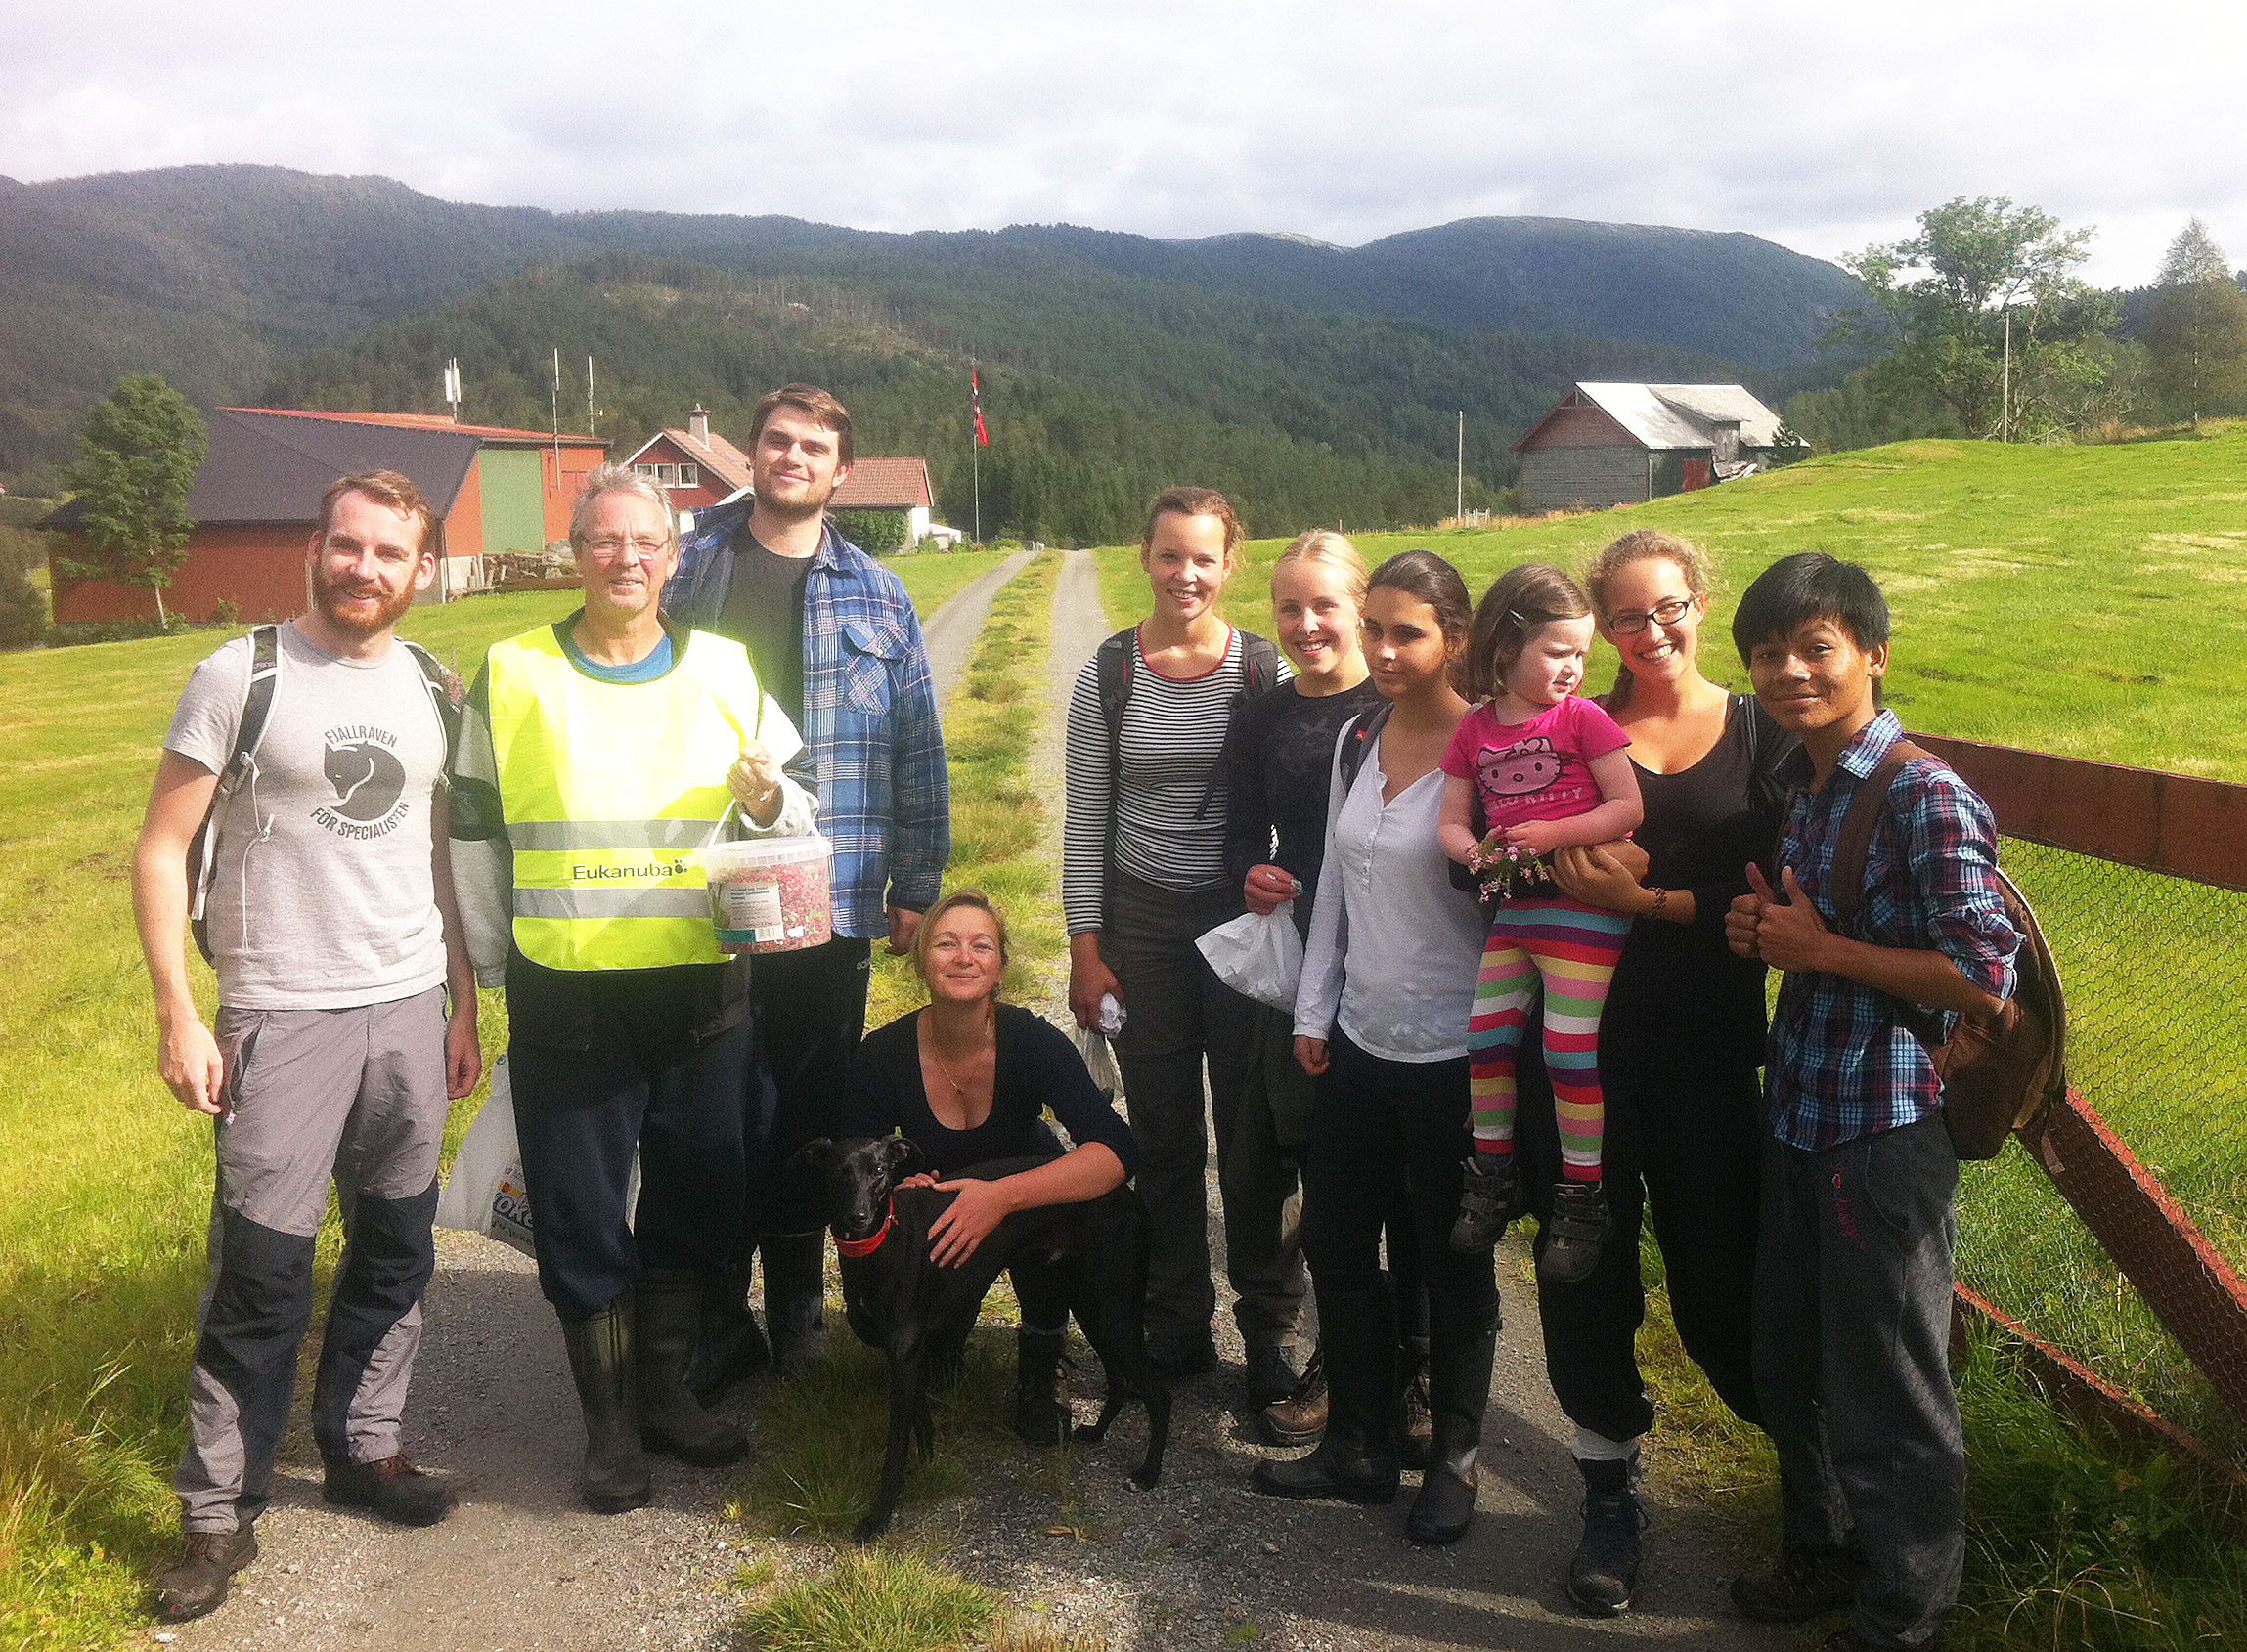 Some of the students and staff on this years postal walk (postveitrimmen)